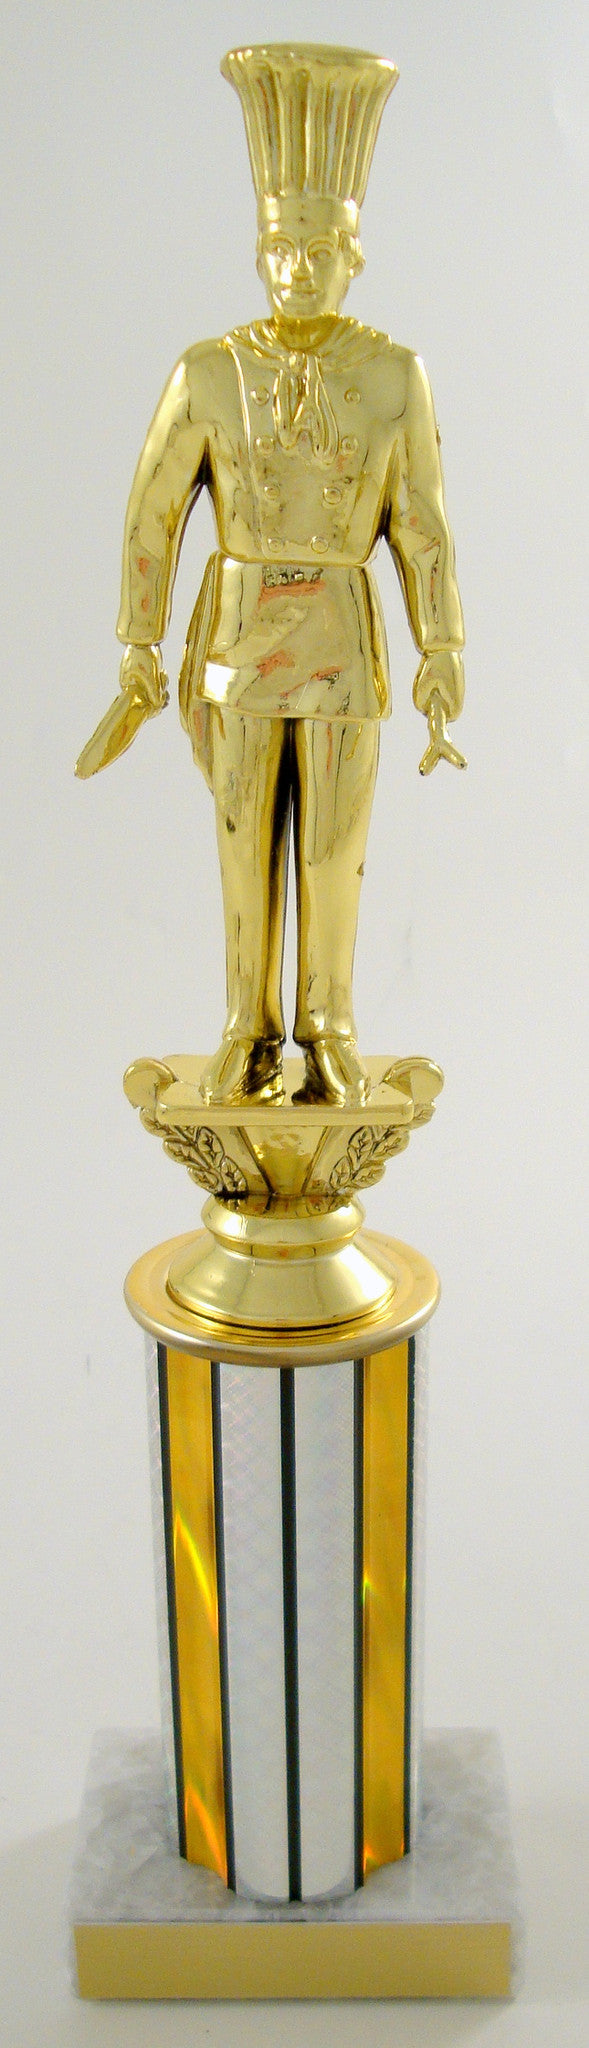 Chef Trophy Figure on On Round Column With White Marble base-Trophies-Schoppy's Since 1921